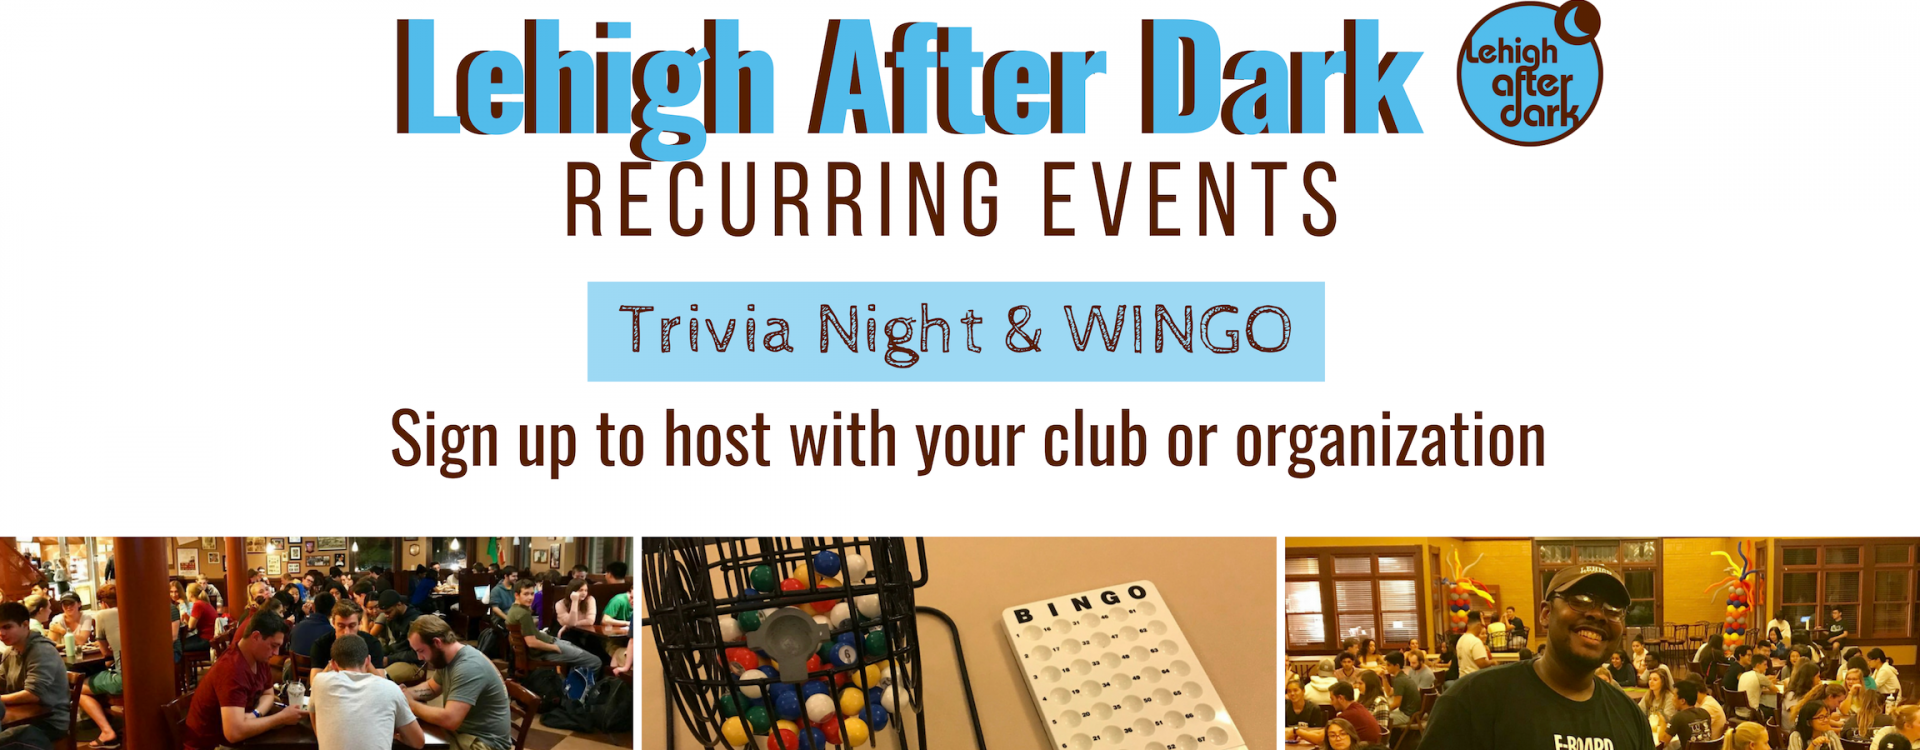 Trivia every Thursday night at 10pm and Wingo once a month- sign up to sponsor an event today!